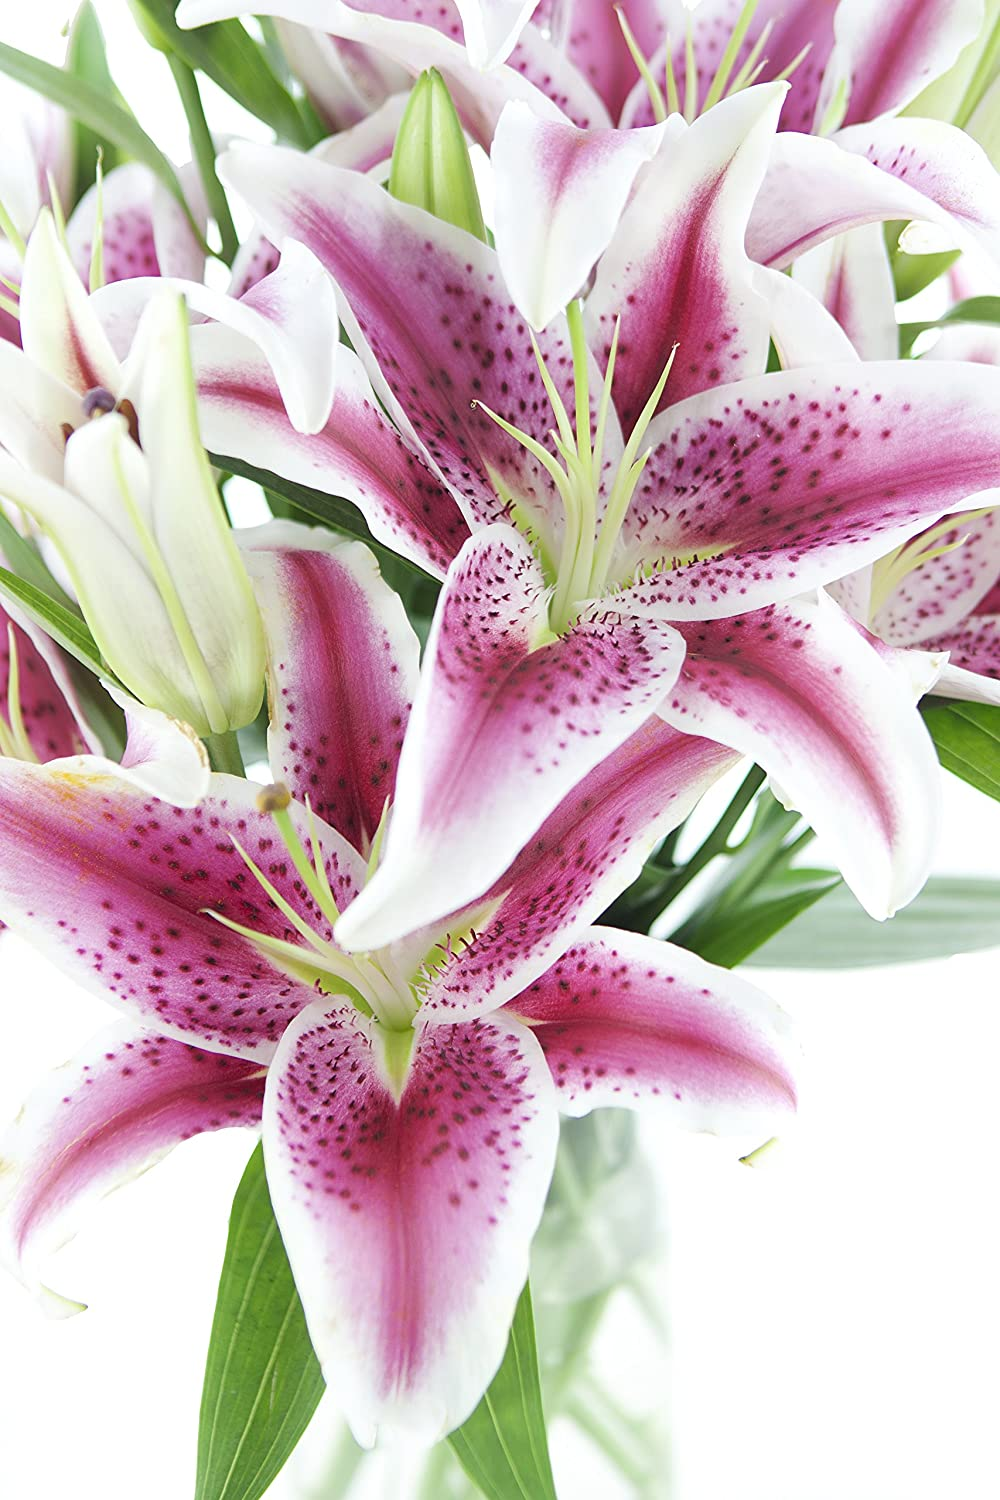 Amazon pink stargazer lily bouquet 13 stems the kabloom amazon pink stargazer lily bouquet 13 stems the kabloom collection flowers with vase grocery gourmet food izmirmasajfo